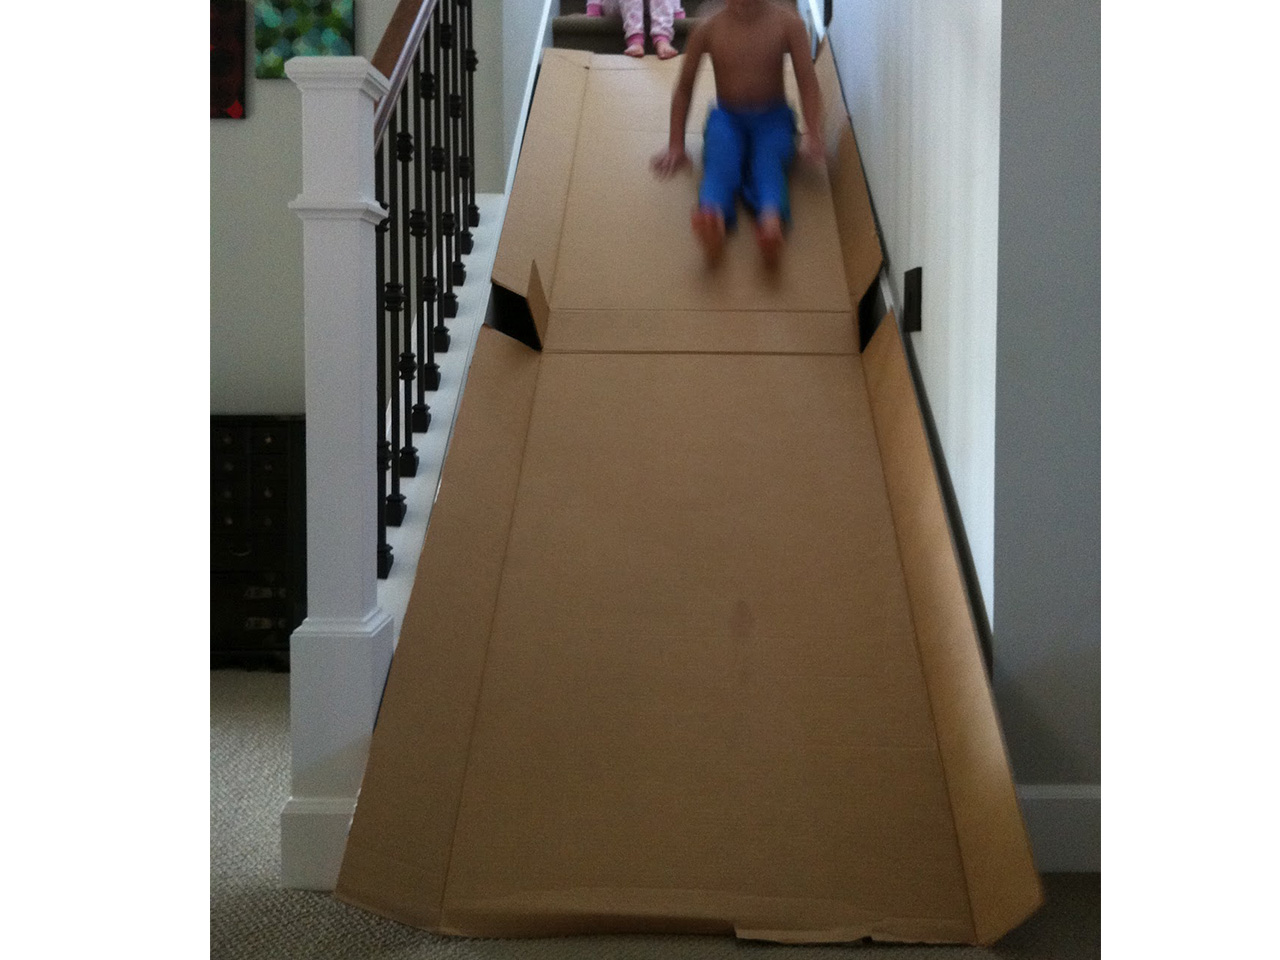 Kids going down a homemade cardboard slide on the stairs